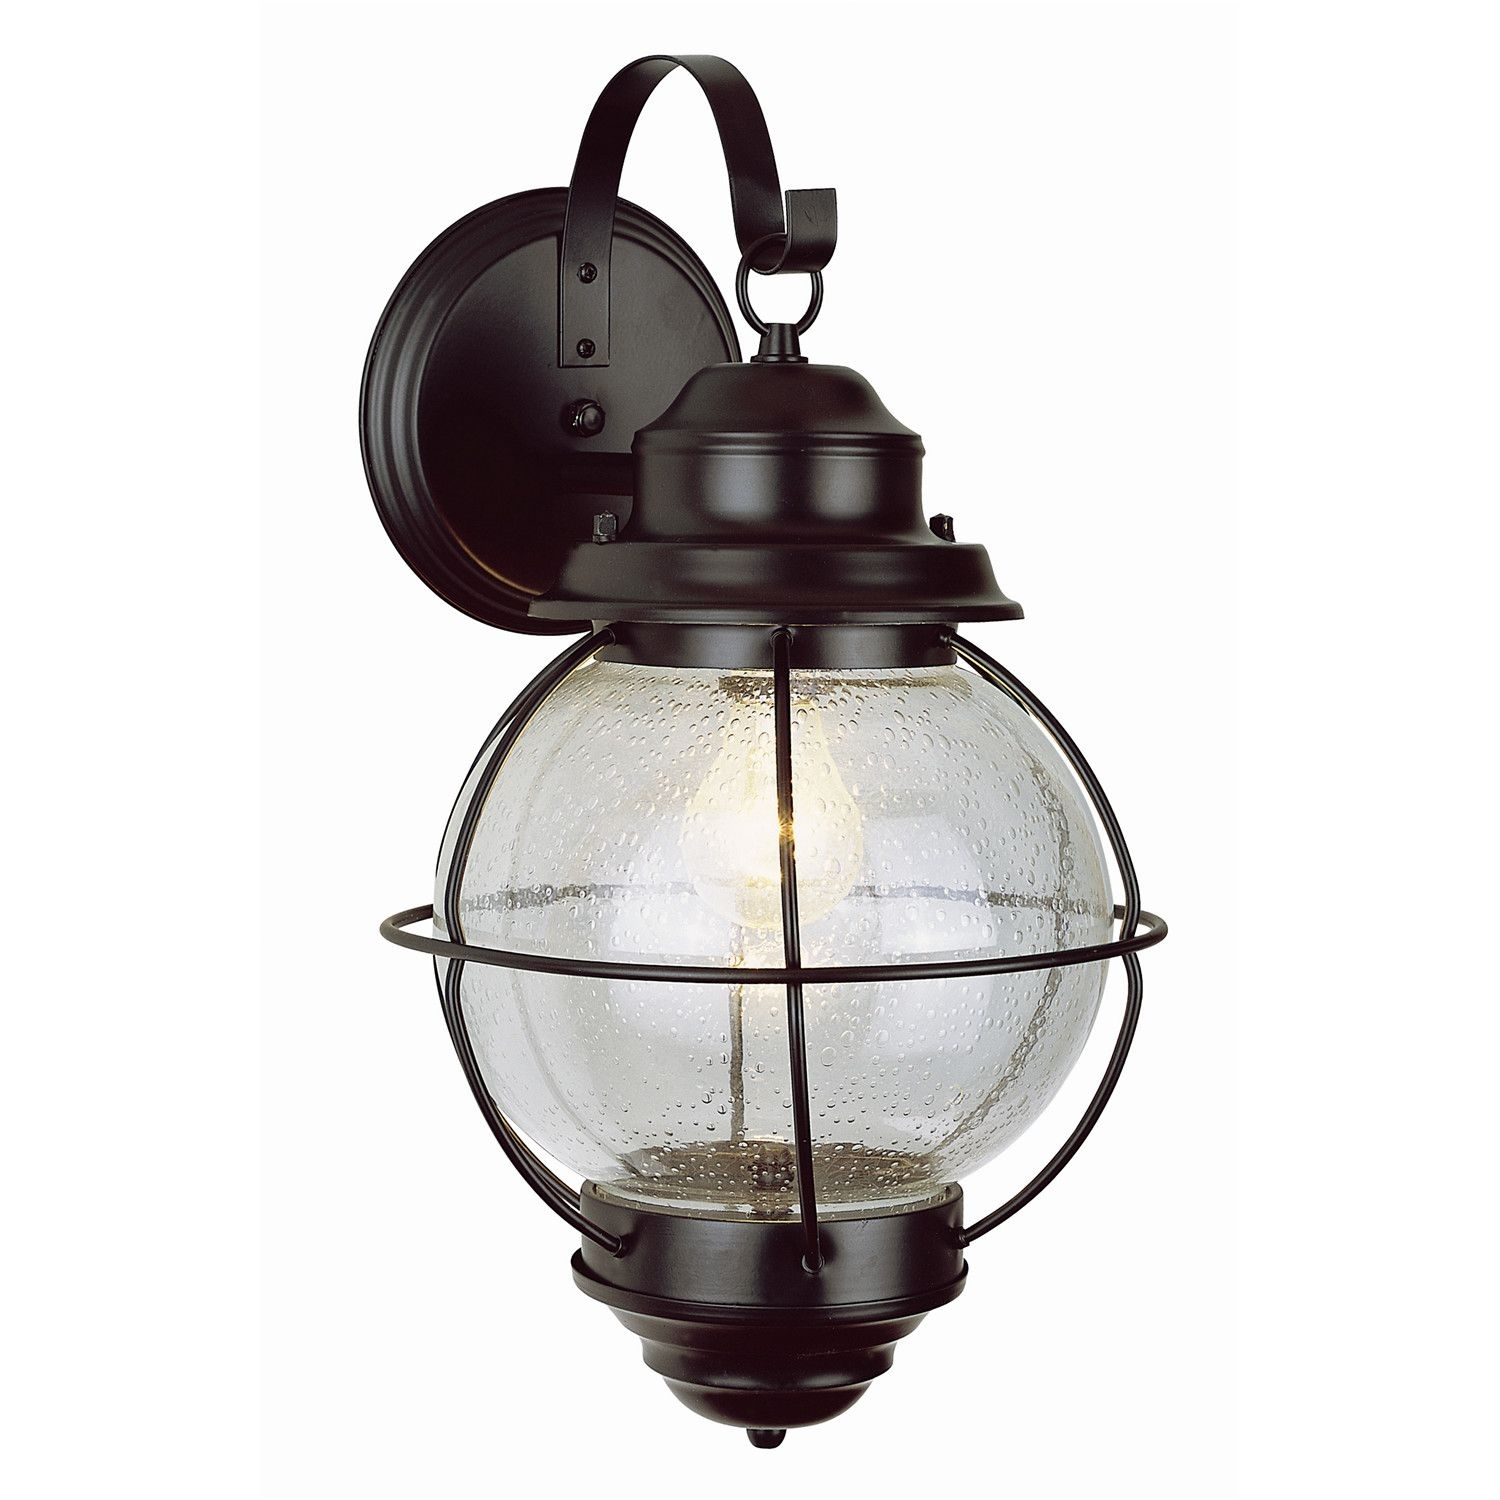 Inspiration about Transglobe Lighting Outdoor 1 Light Wall Lantern | Lighting Inside Outdoor Wall Lantern By Transglobe Lighting (#10 of 15)